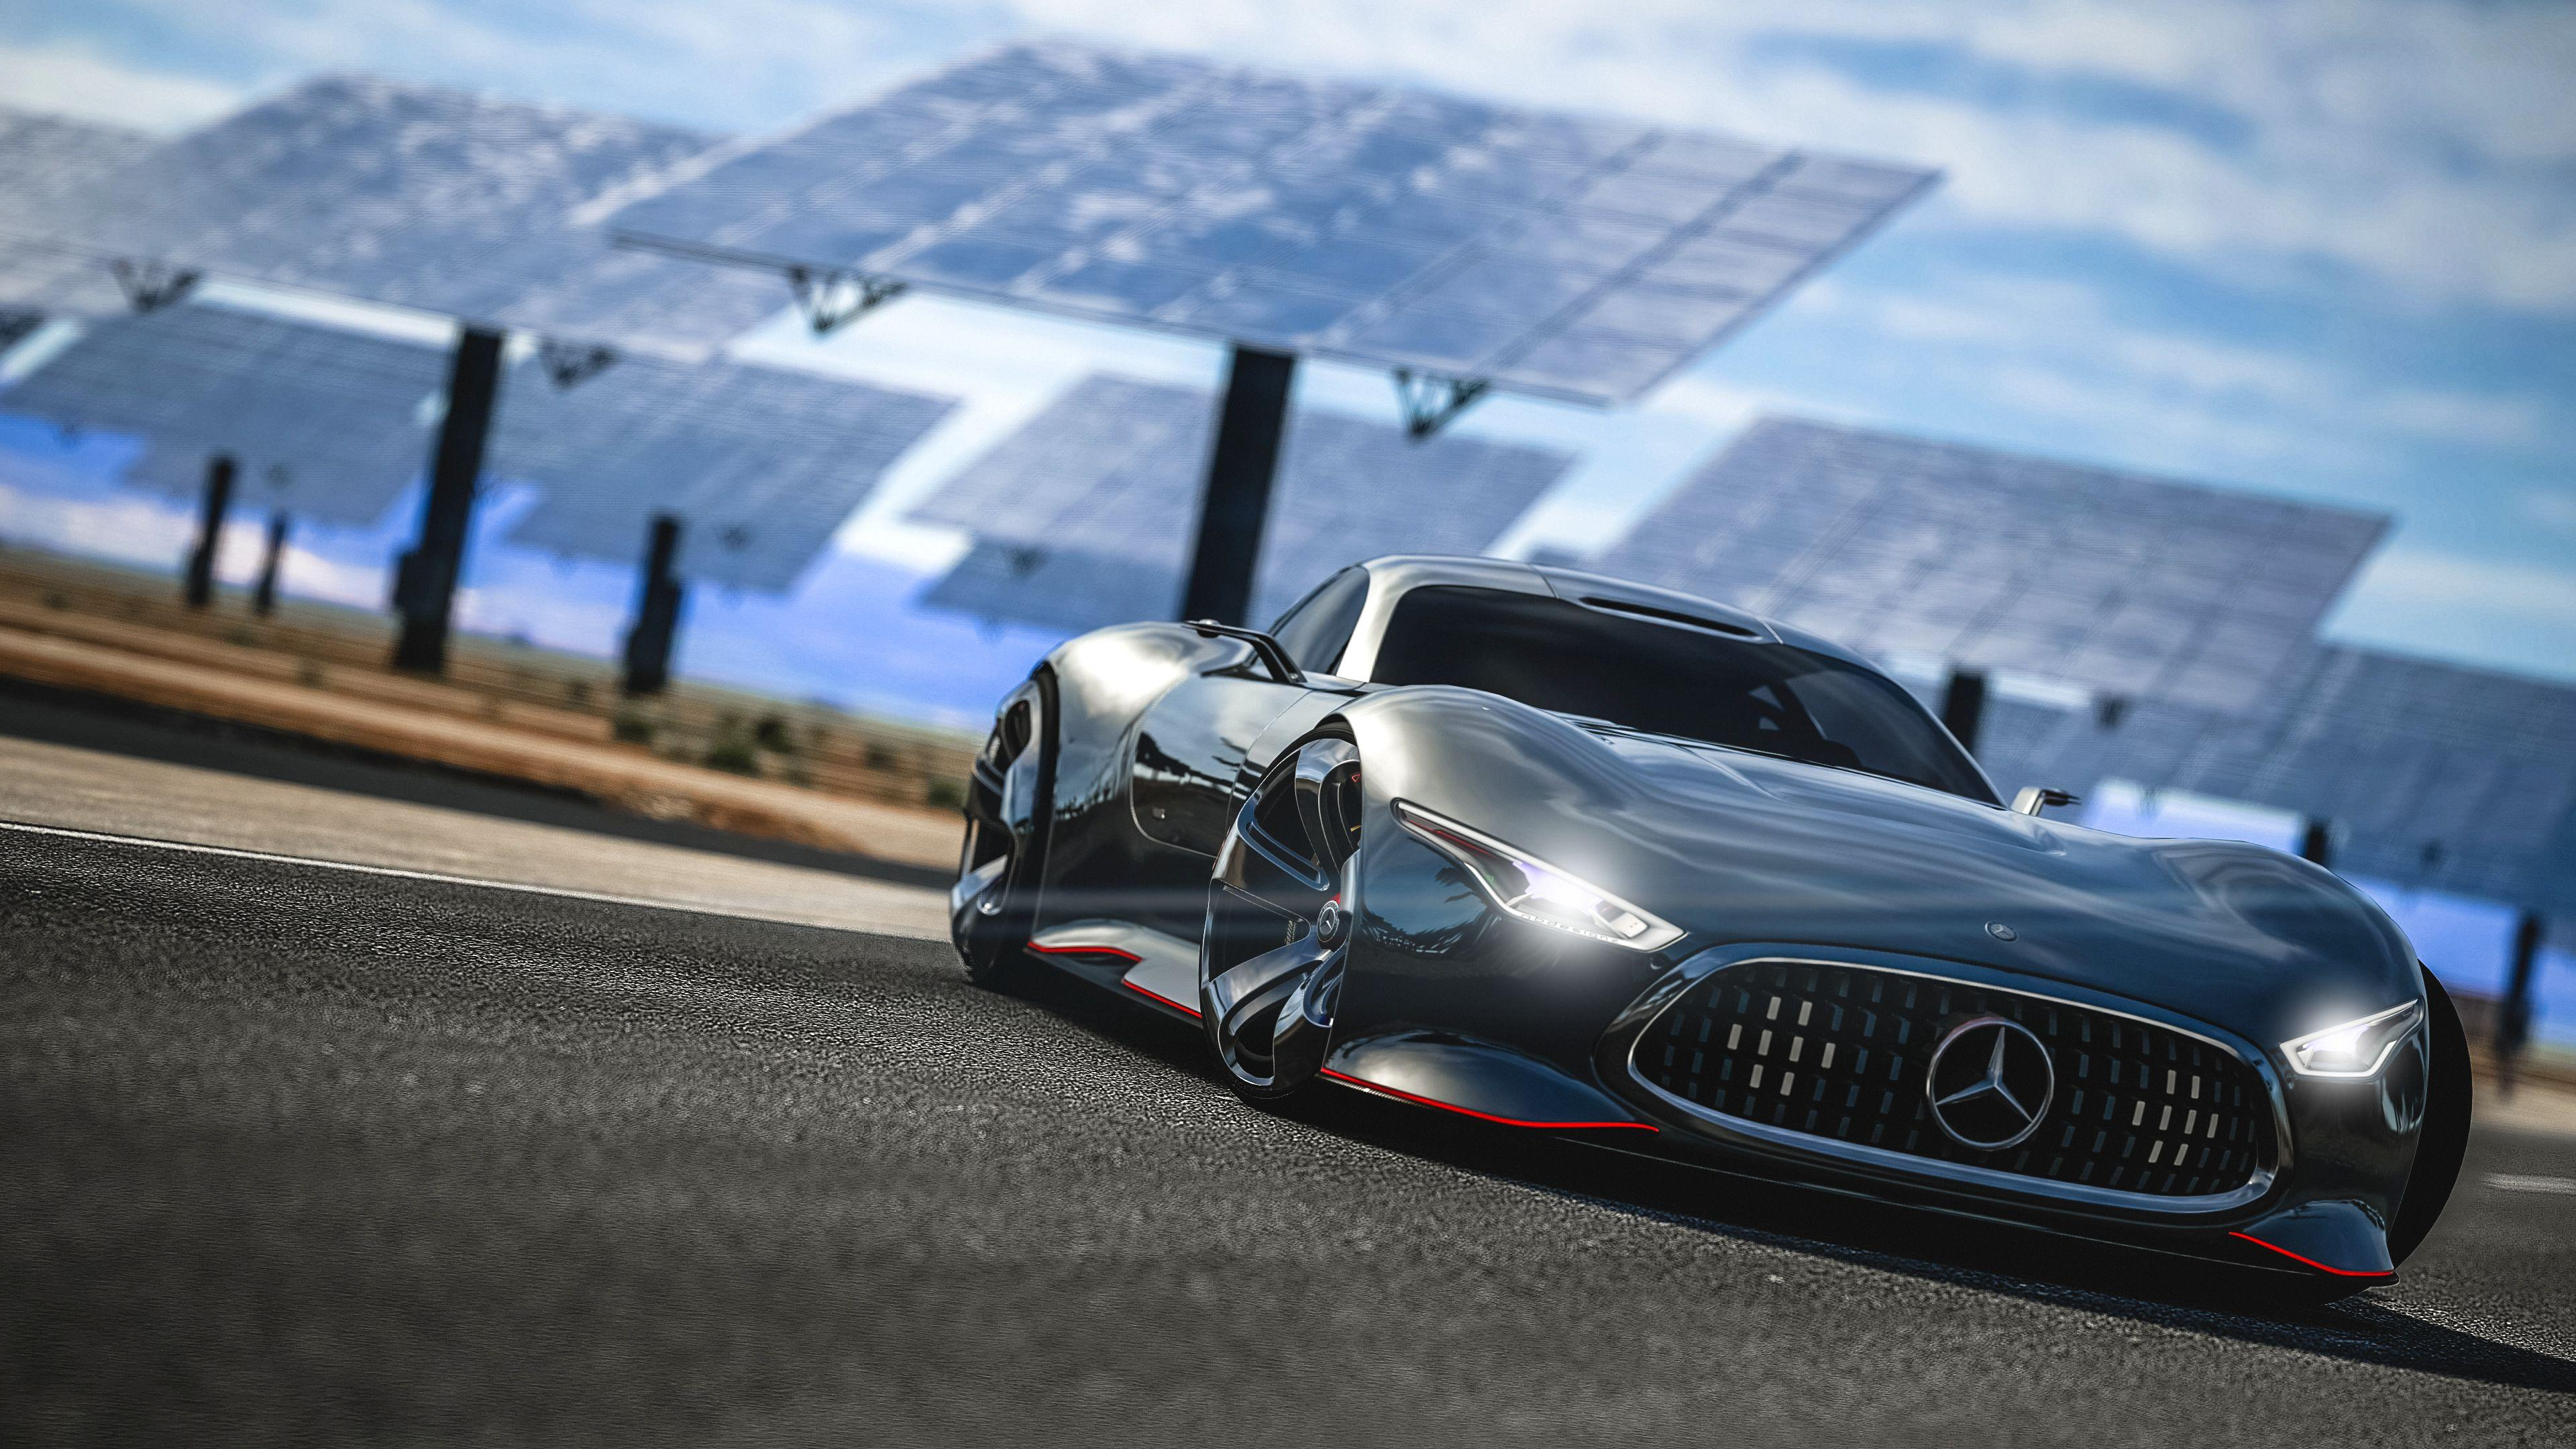 Mercedes Benz AMG Vision GT Wallpapers